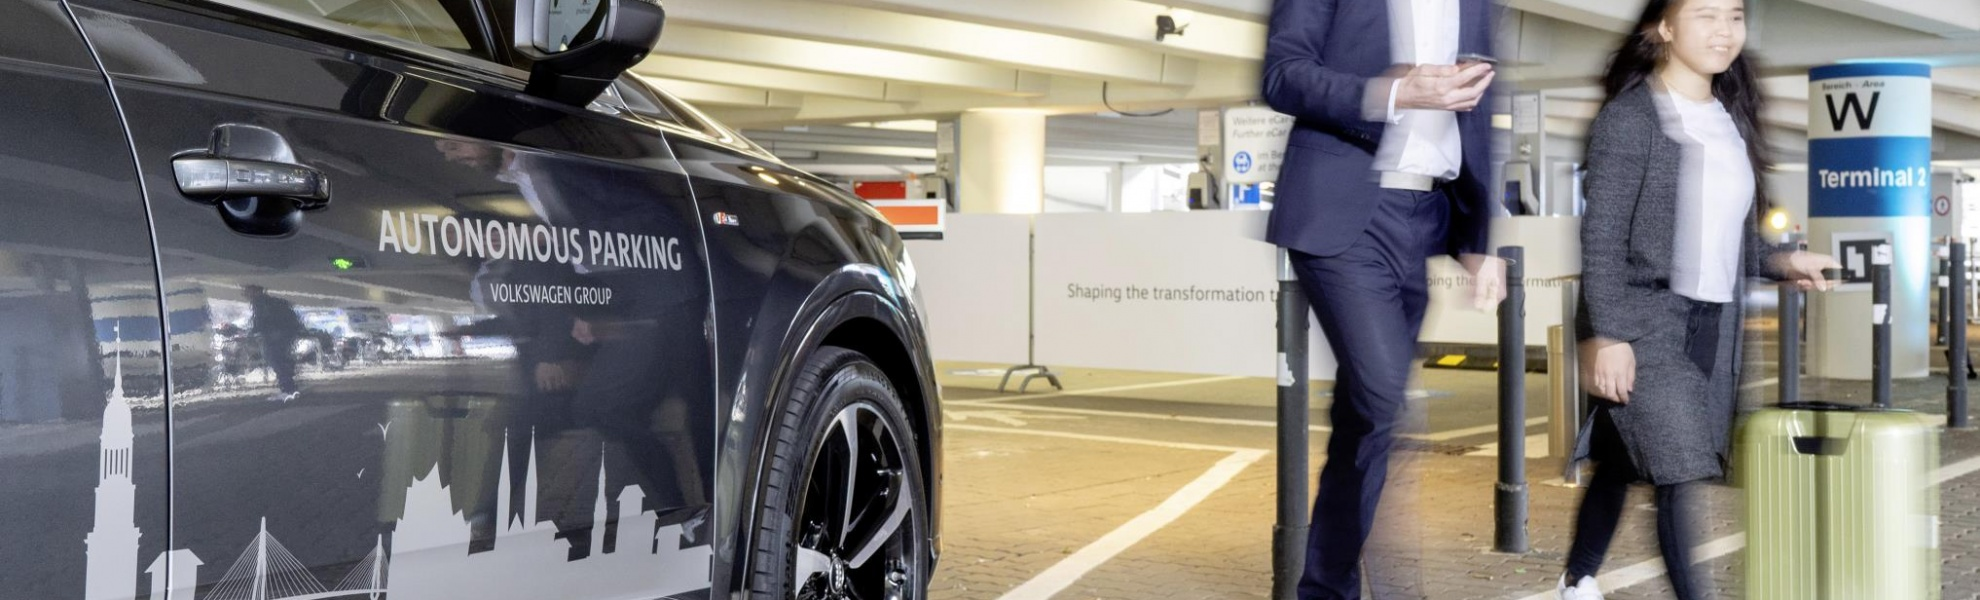 Volkswagen Group soon to have autonomous parking ready for series vehicles.jpg